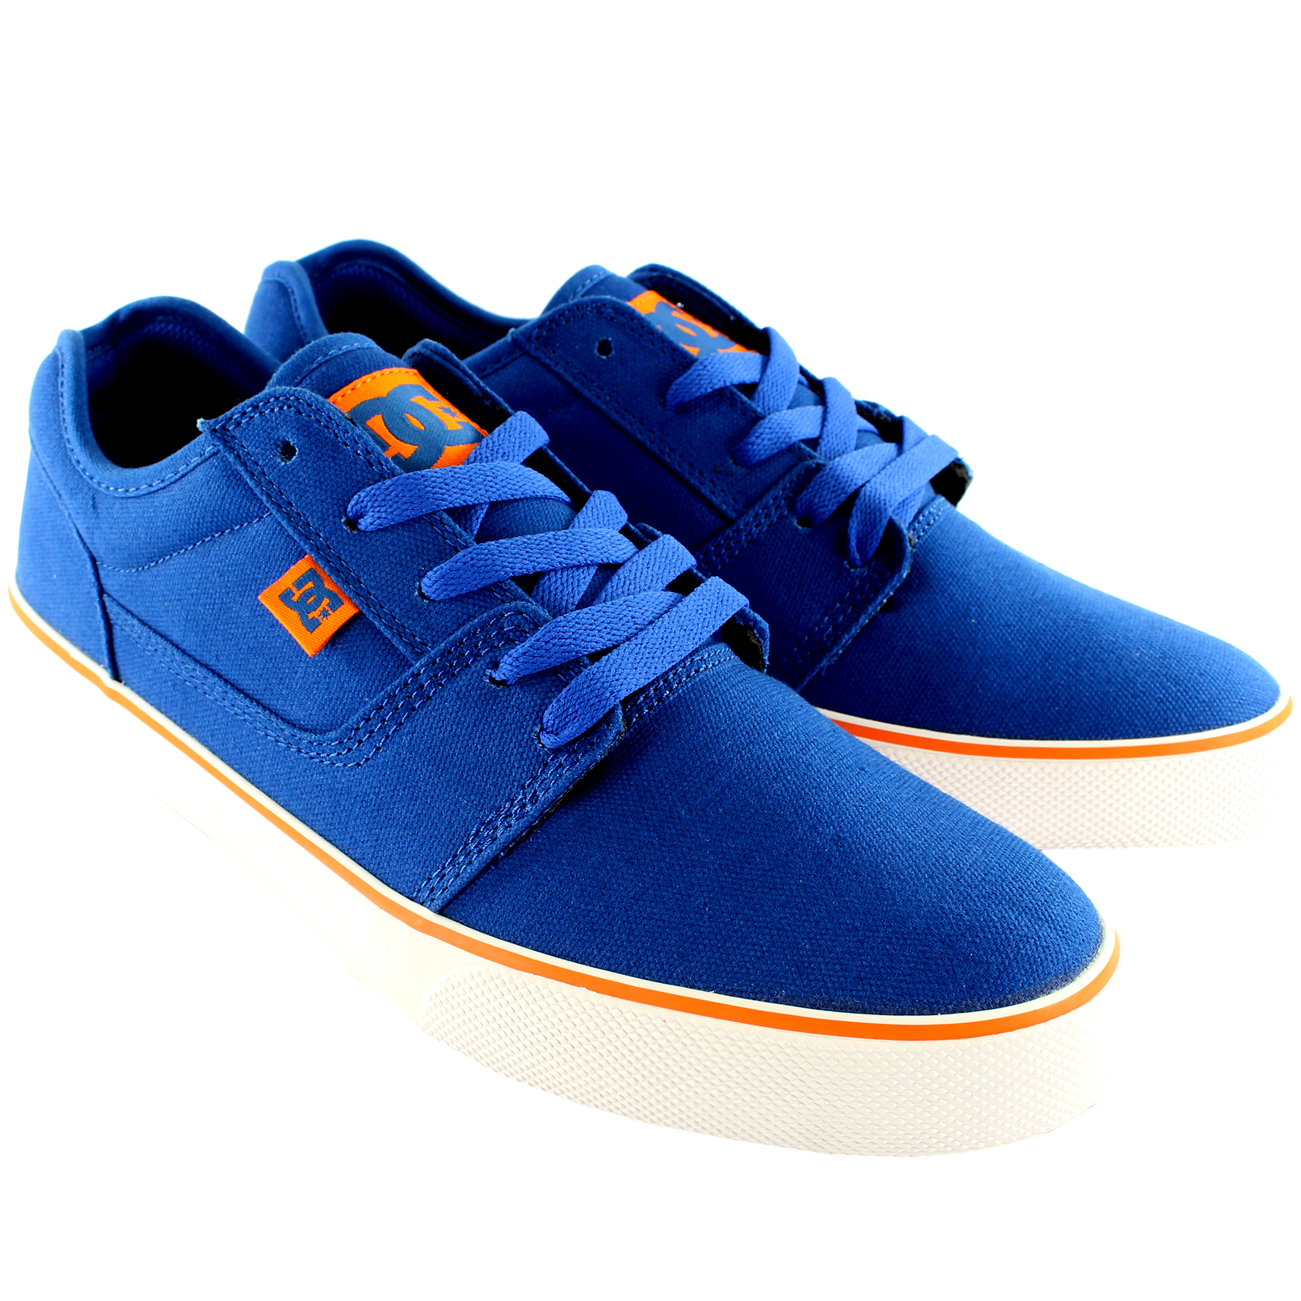 DC Shoes Tonik Skate Shoes